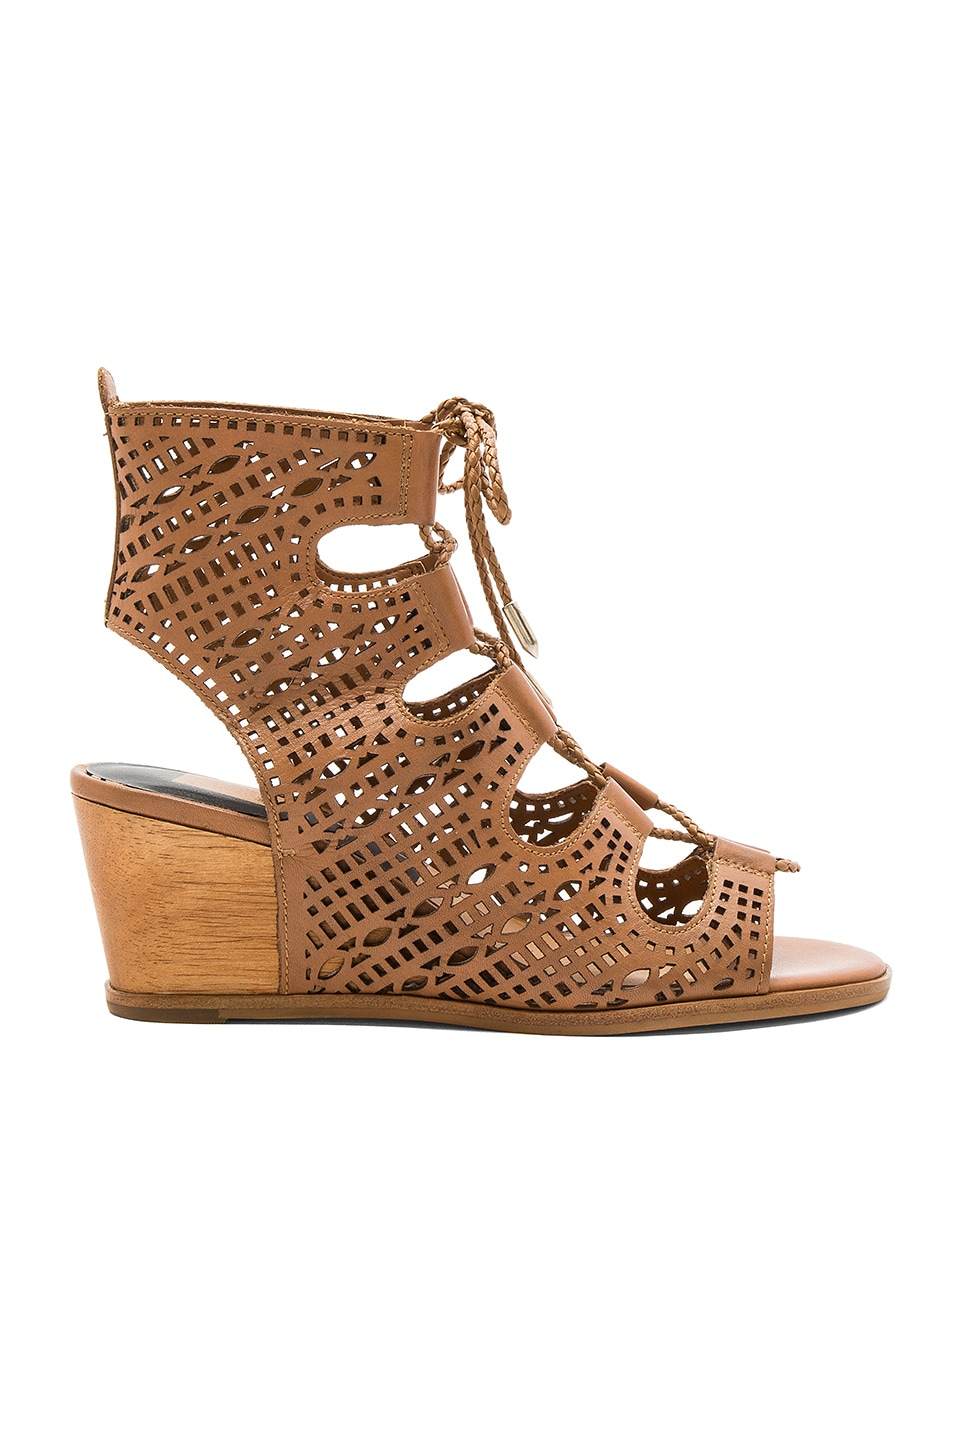 Dolce Vita Lamont Wedge in Caramel